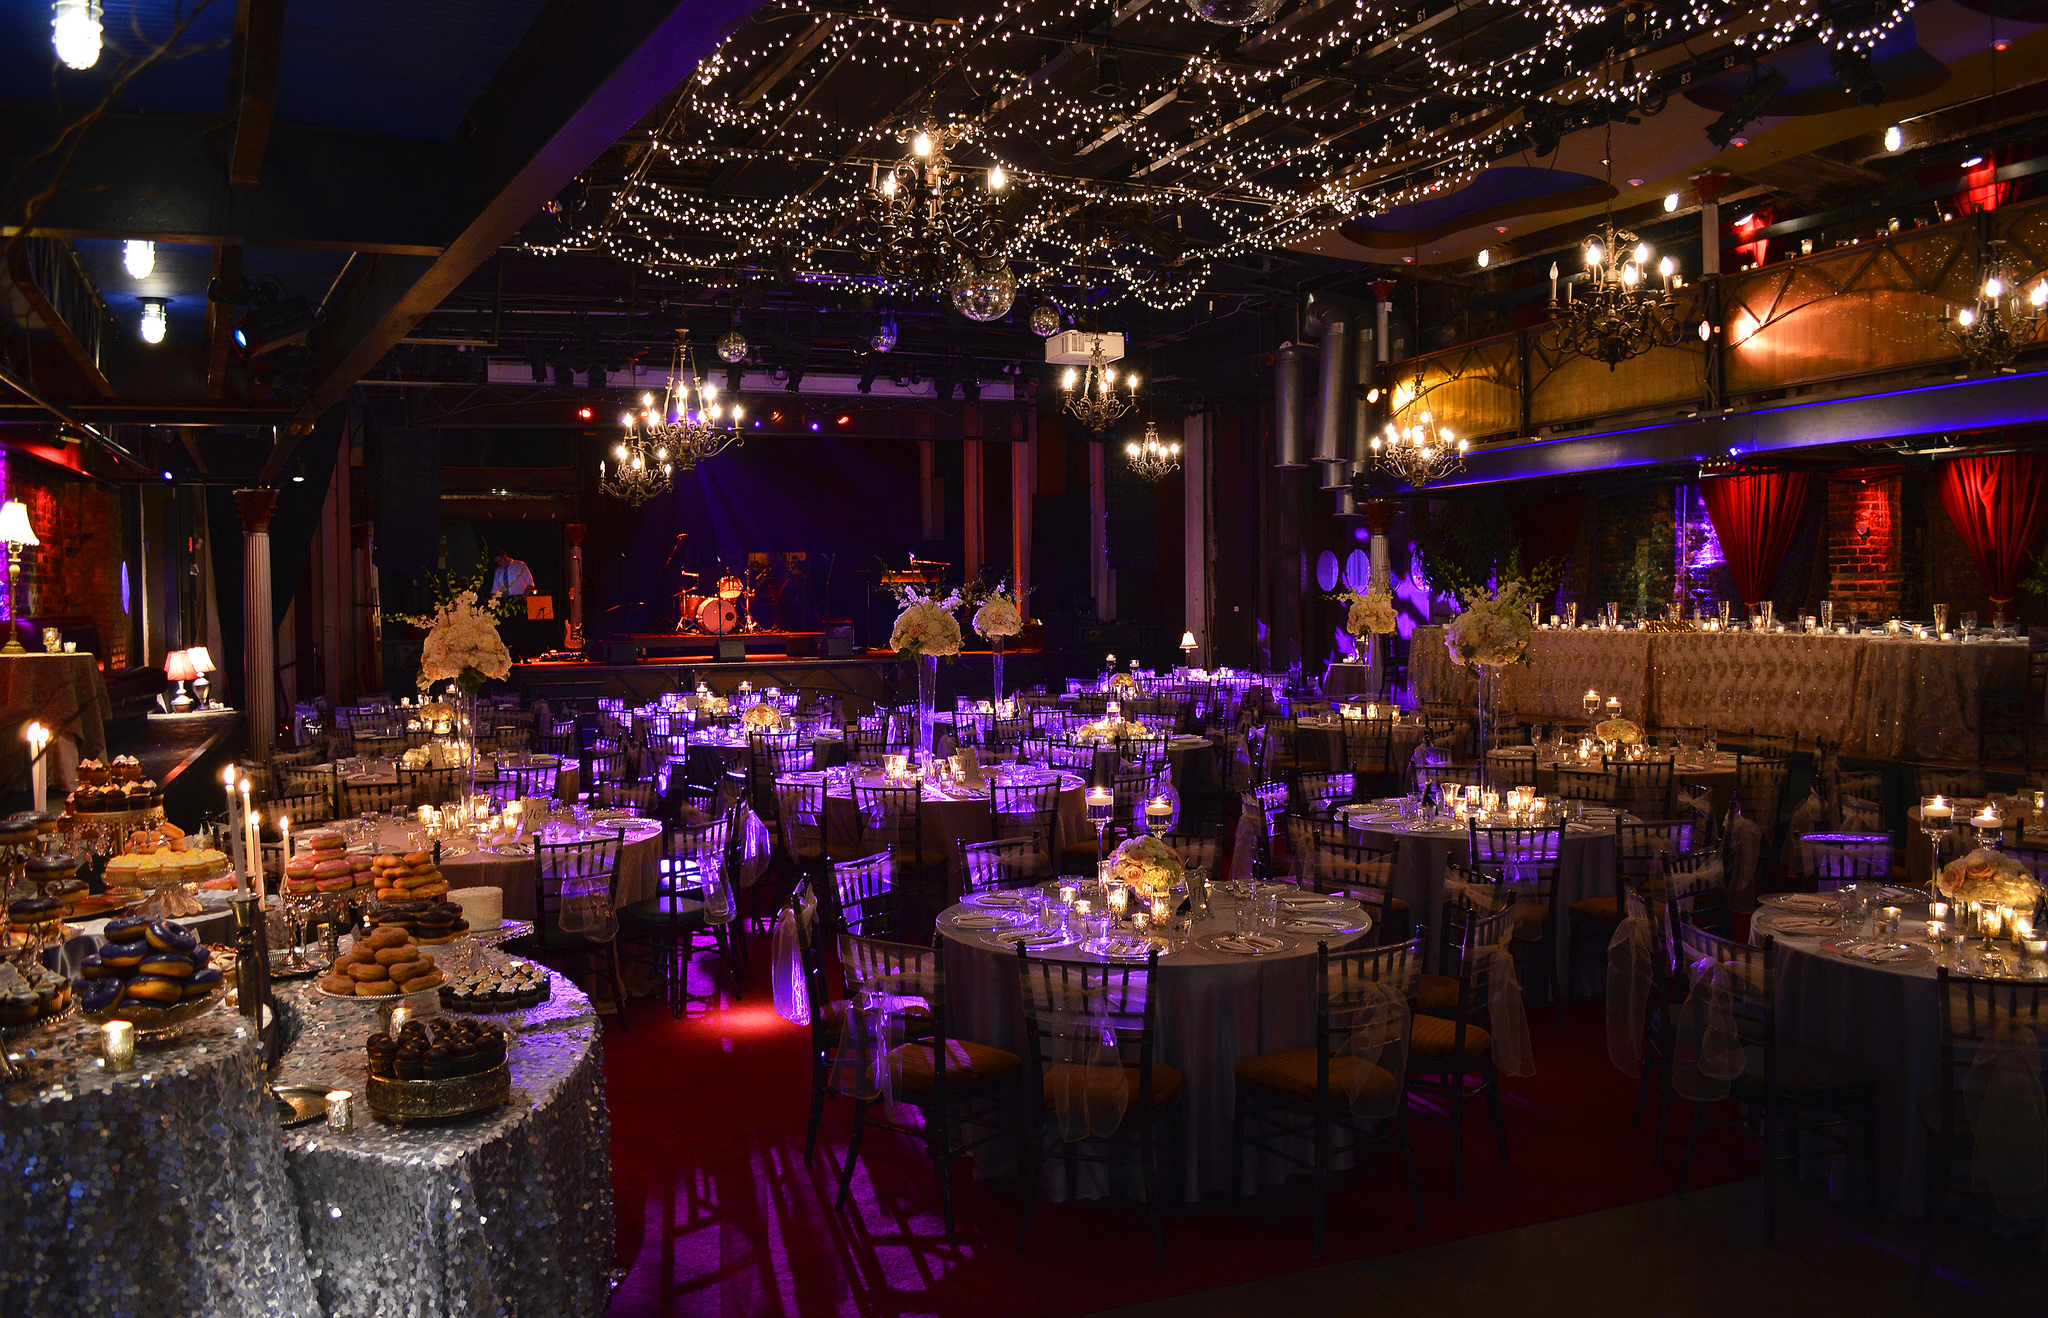 Festivities | MN's premier event rental, decor & floral provider